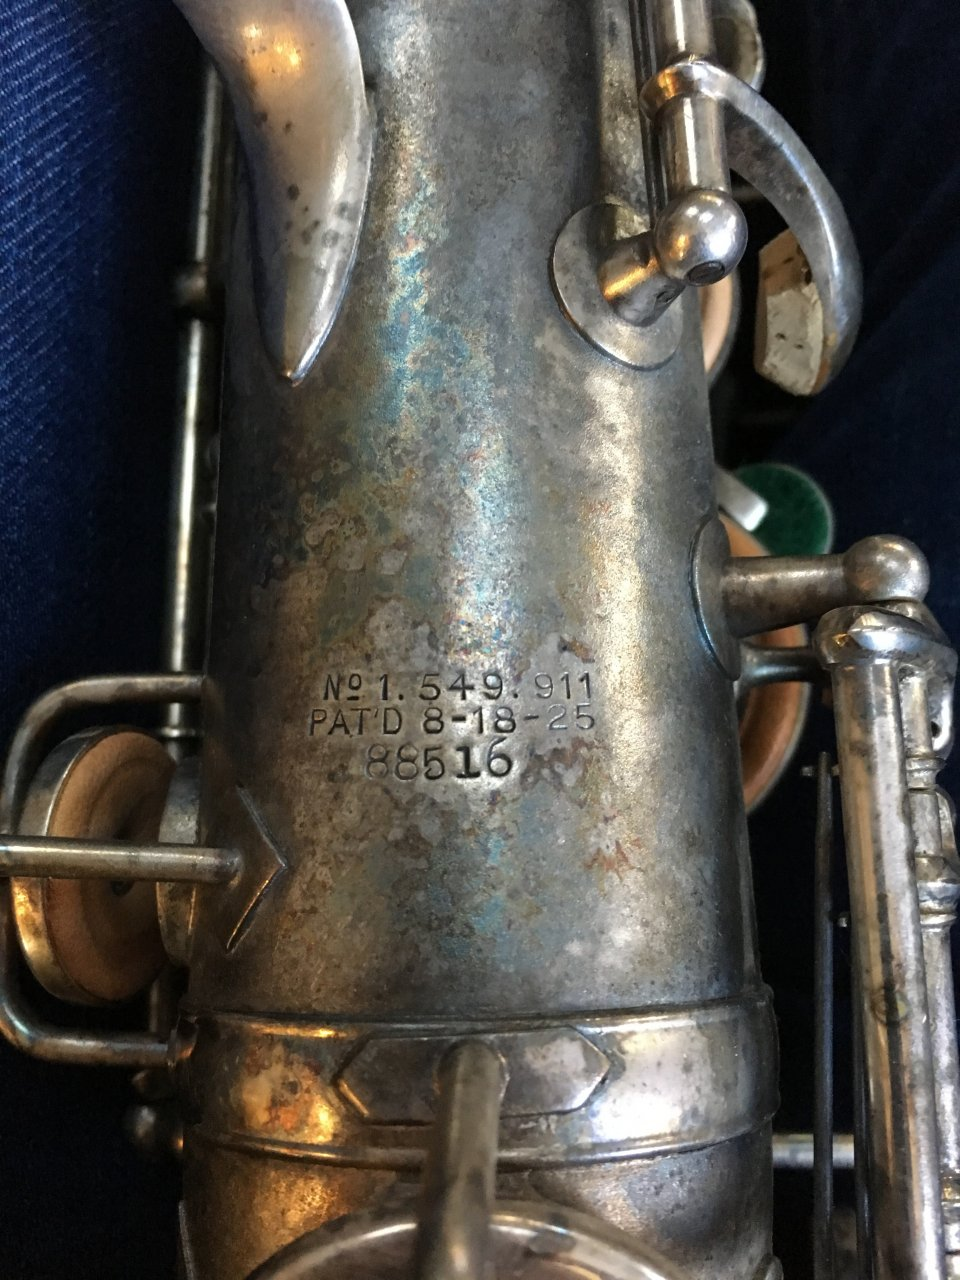 I Have A King White Silver Sax  Probably Alto  Serial Number